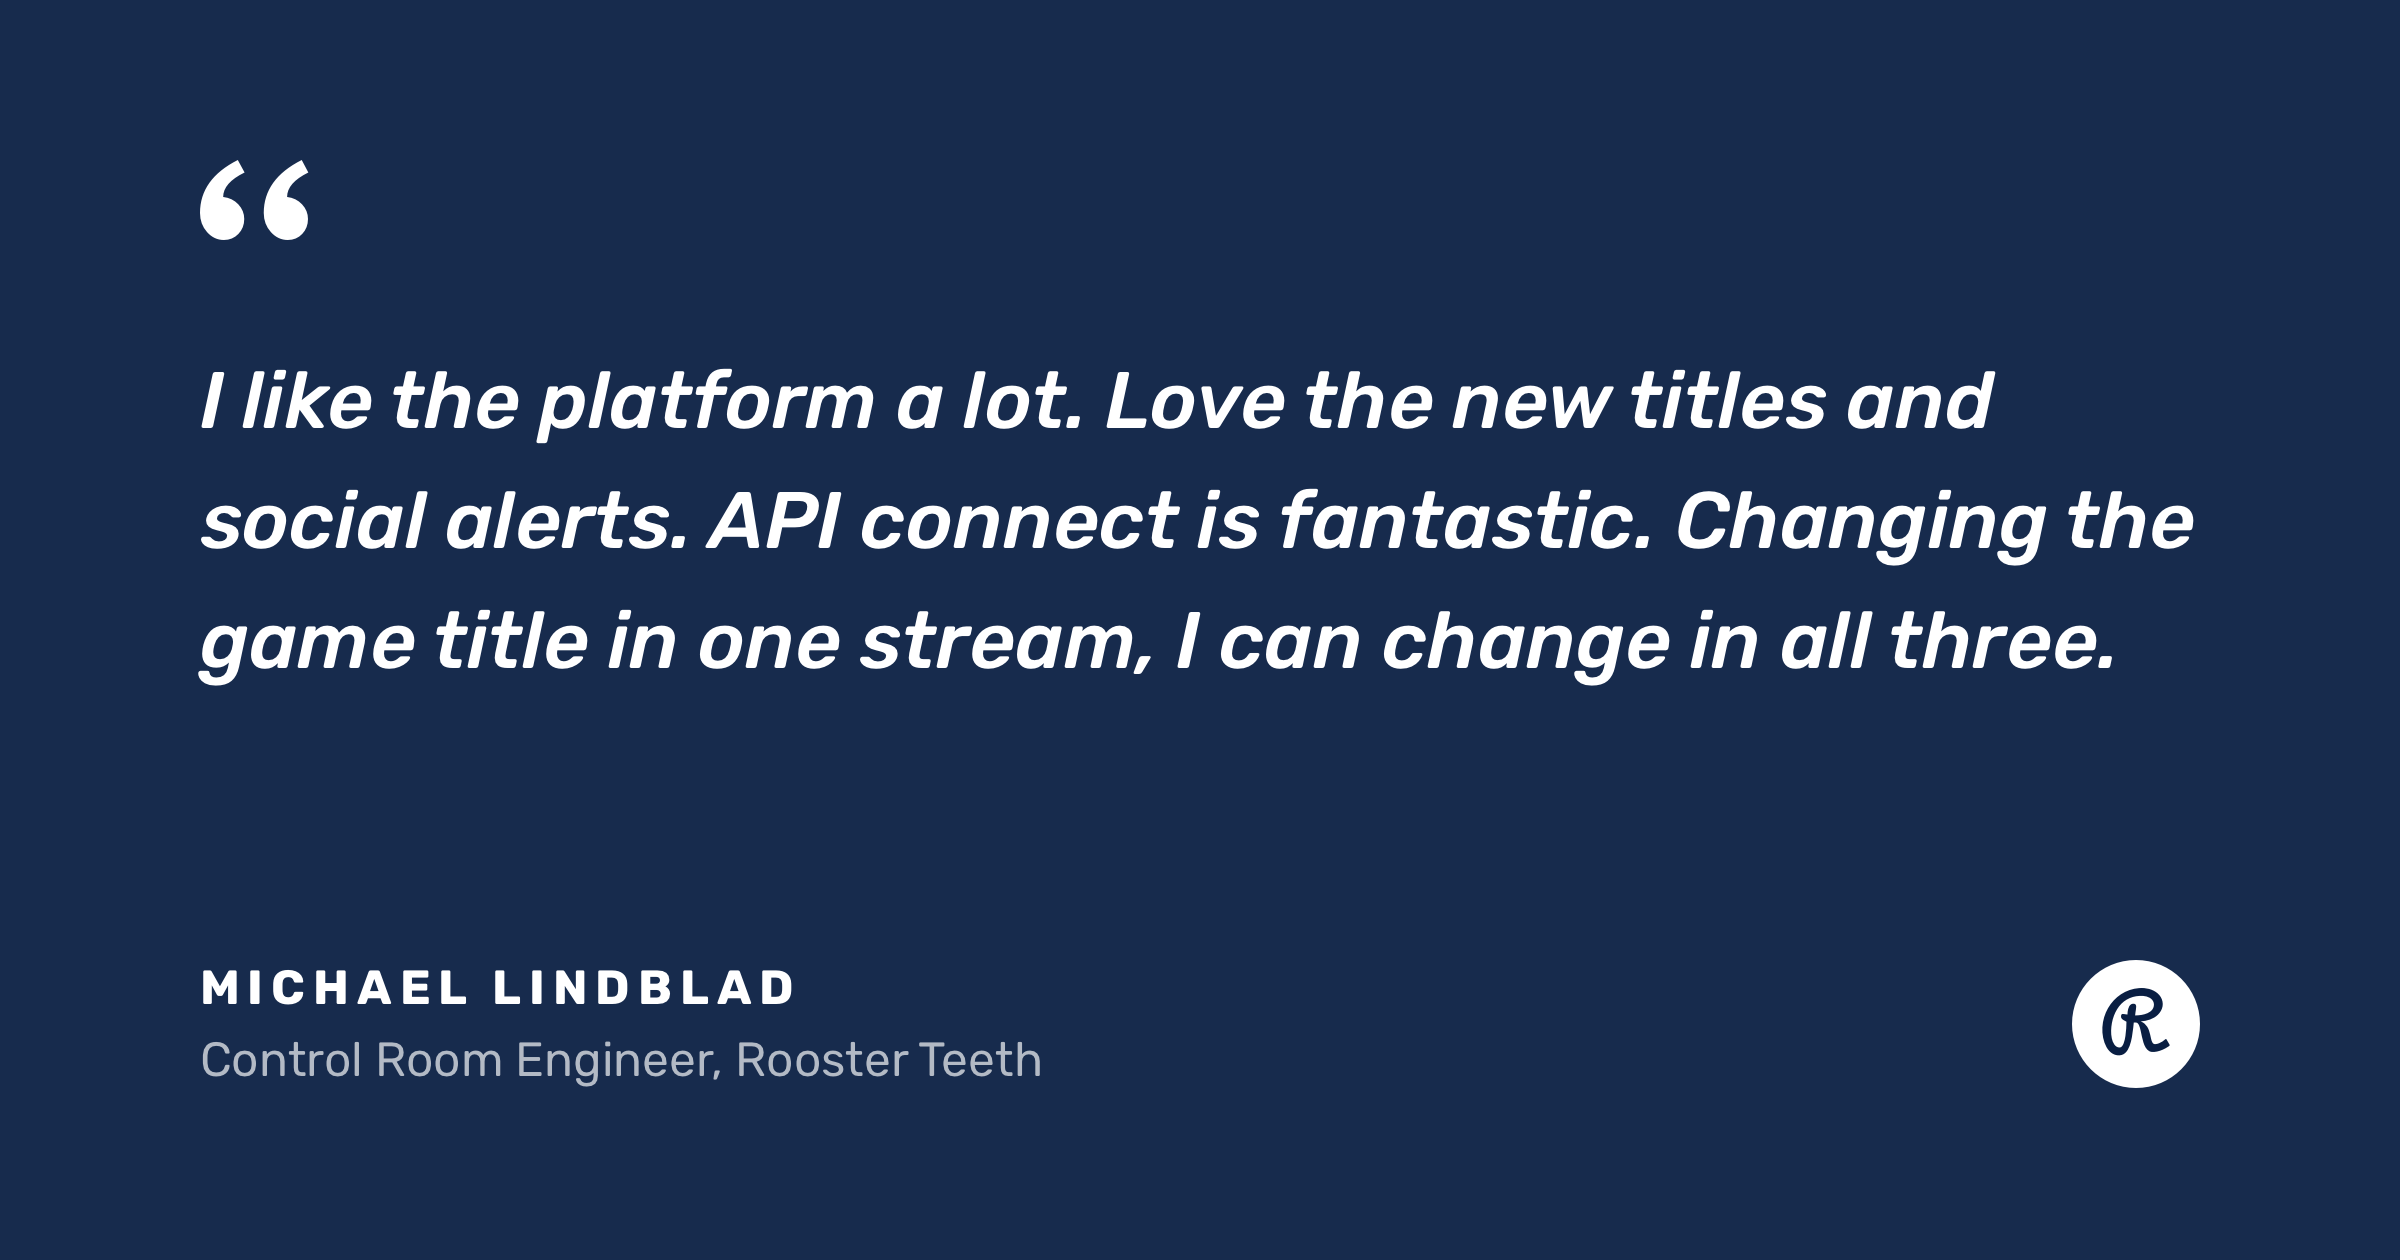 Quote about Restream features